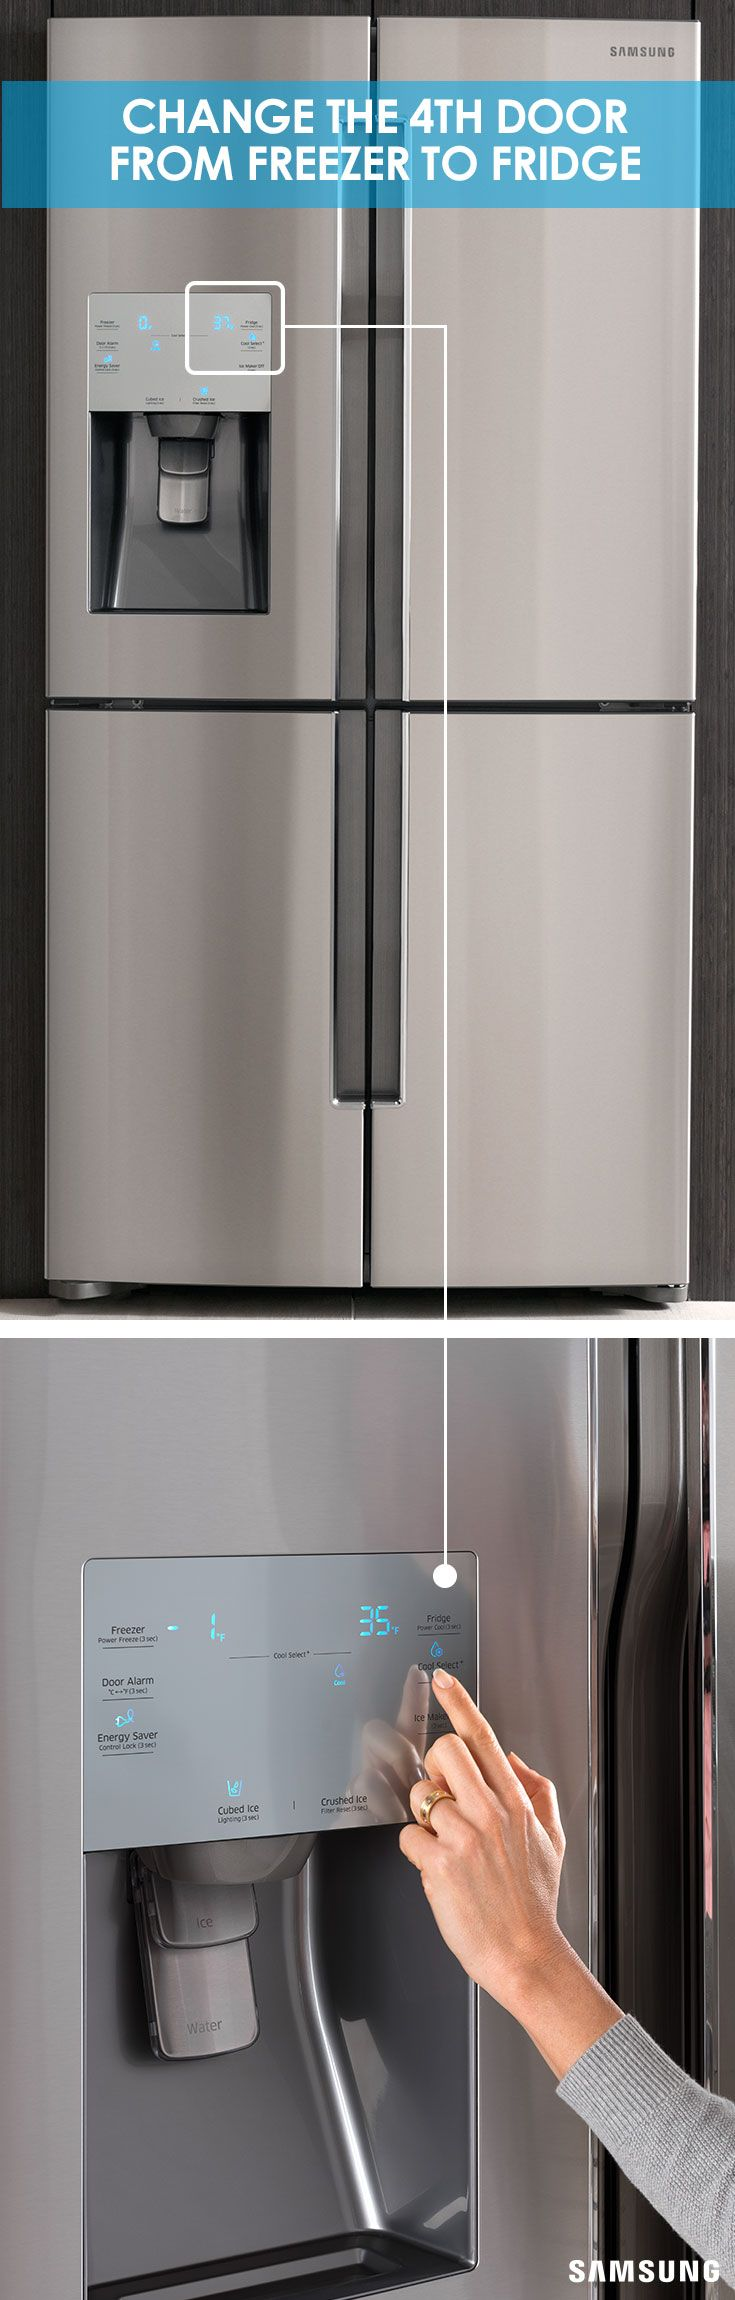 2376 Best Refrigerator Images On Pinterest Refrigerators